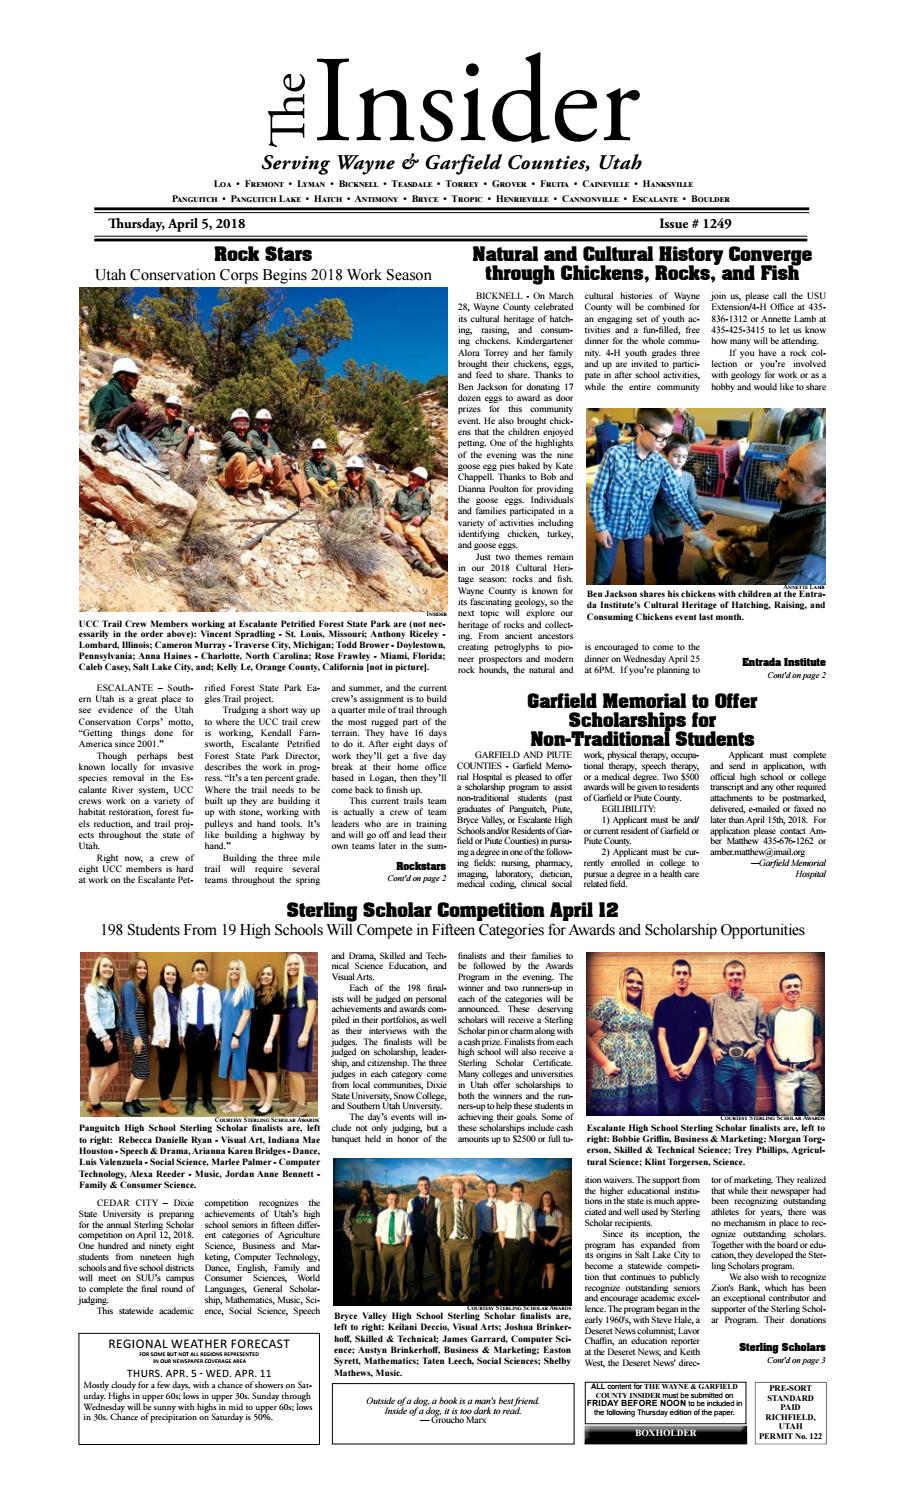 The Wayne & Garfield County Insider April 5, 2018 by